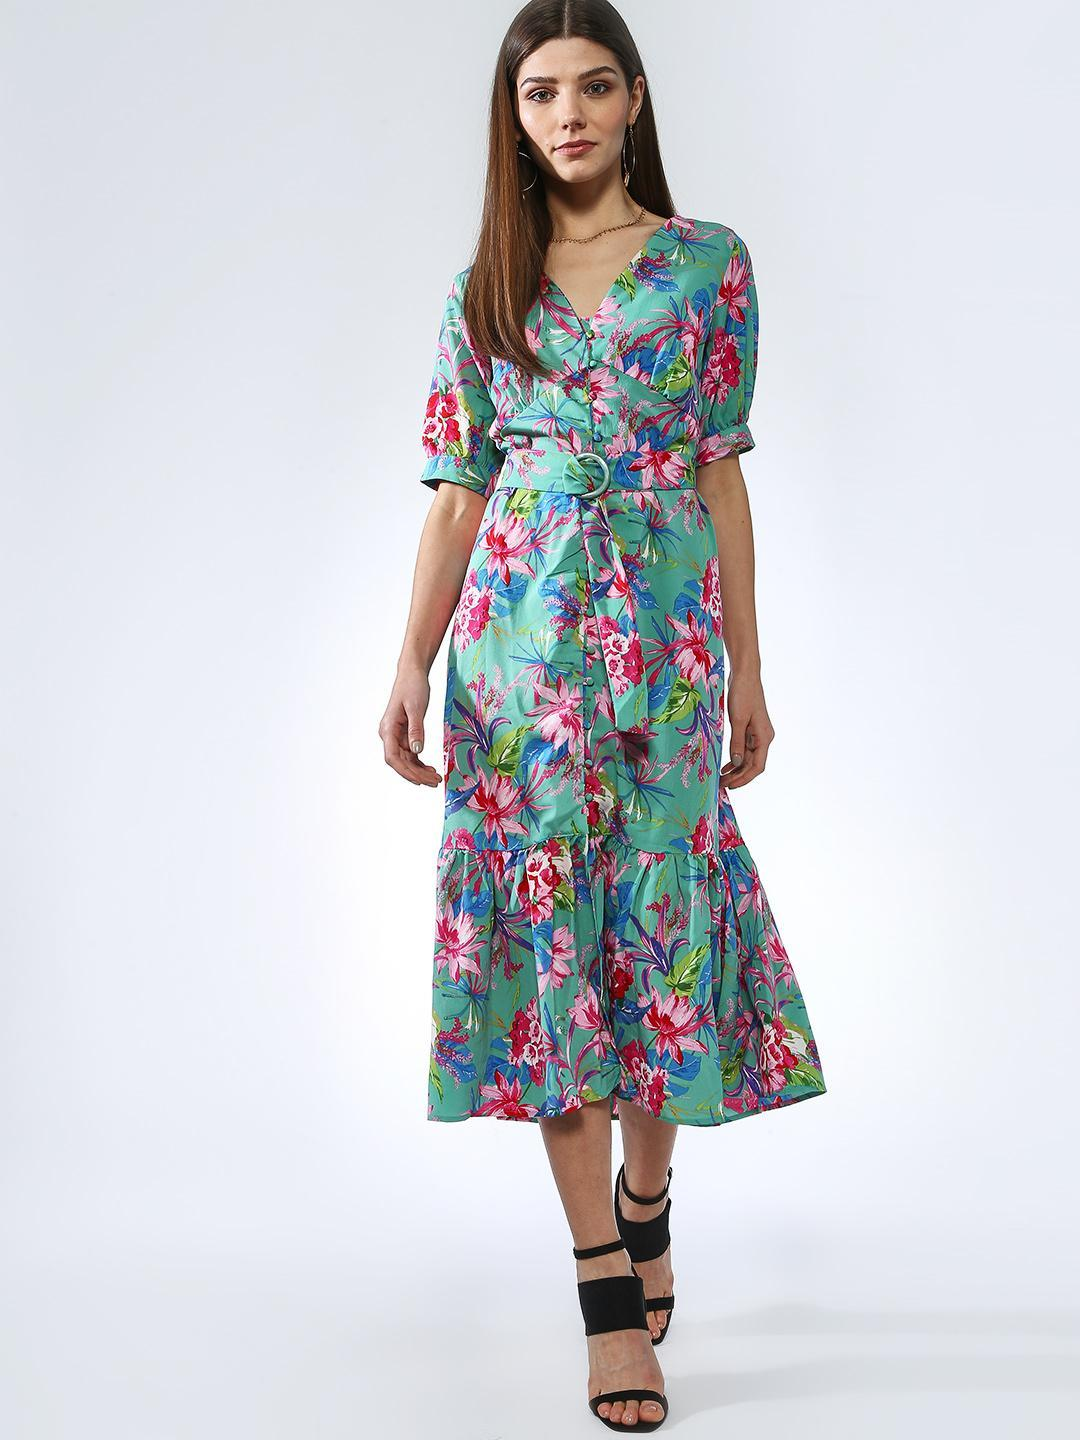 Oxolloxo Multicolor Belted Floral Print Midi Dress 1